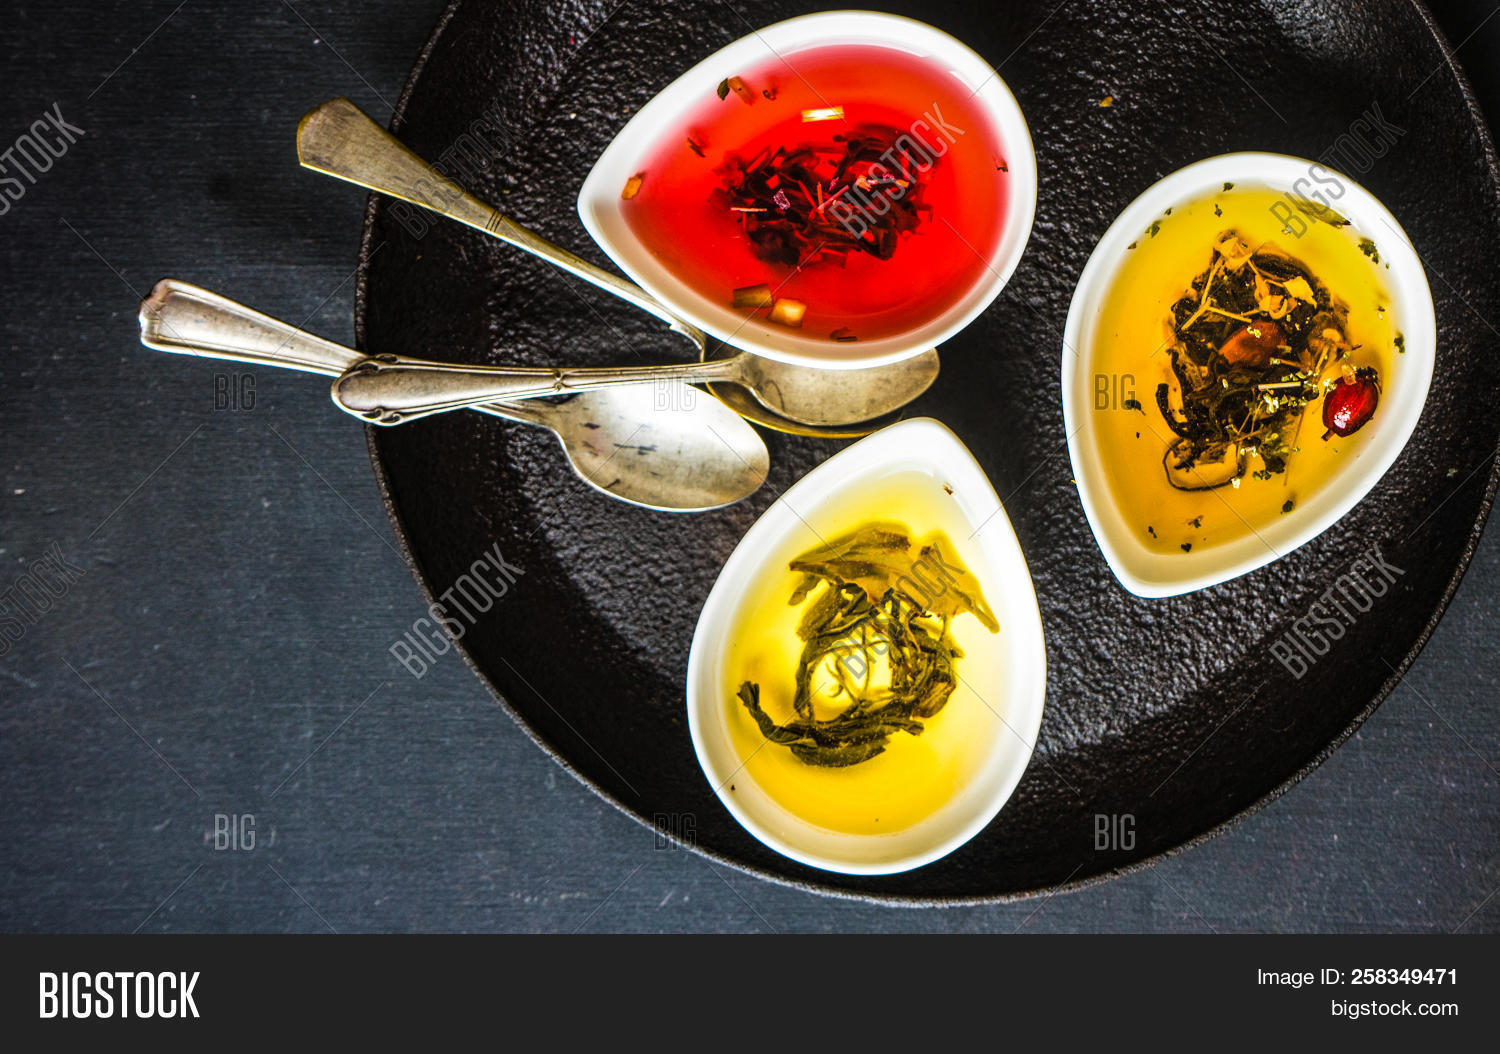 Different Types Tea Image Photo Free Trial Bigstock